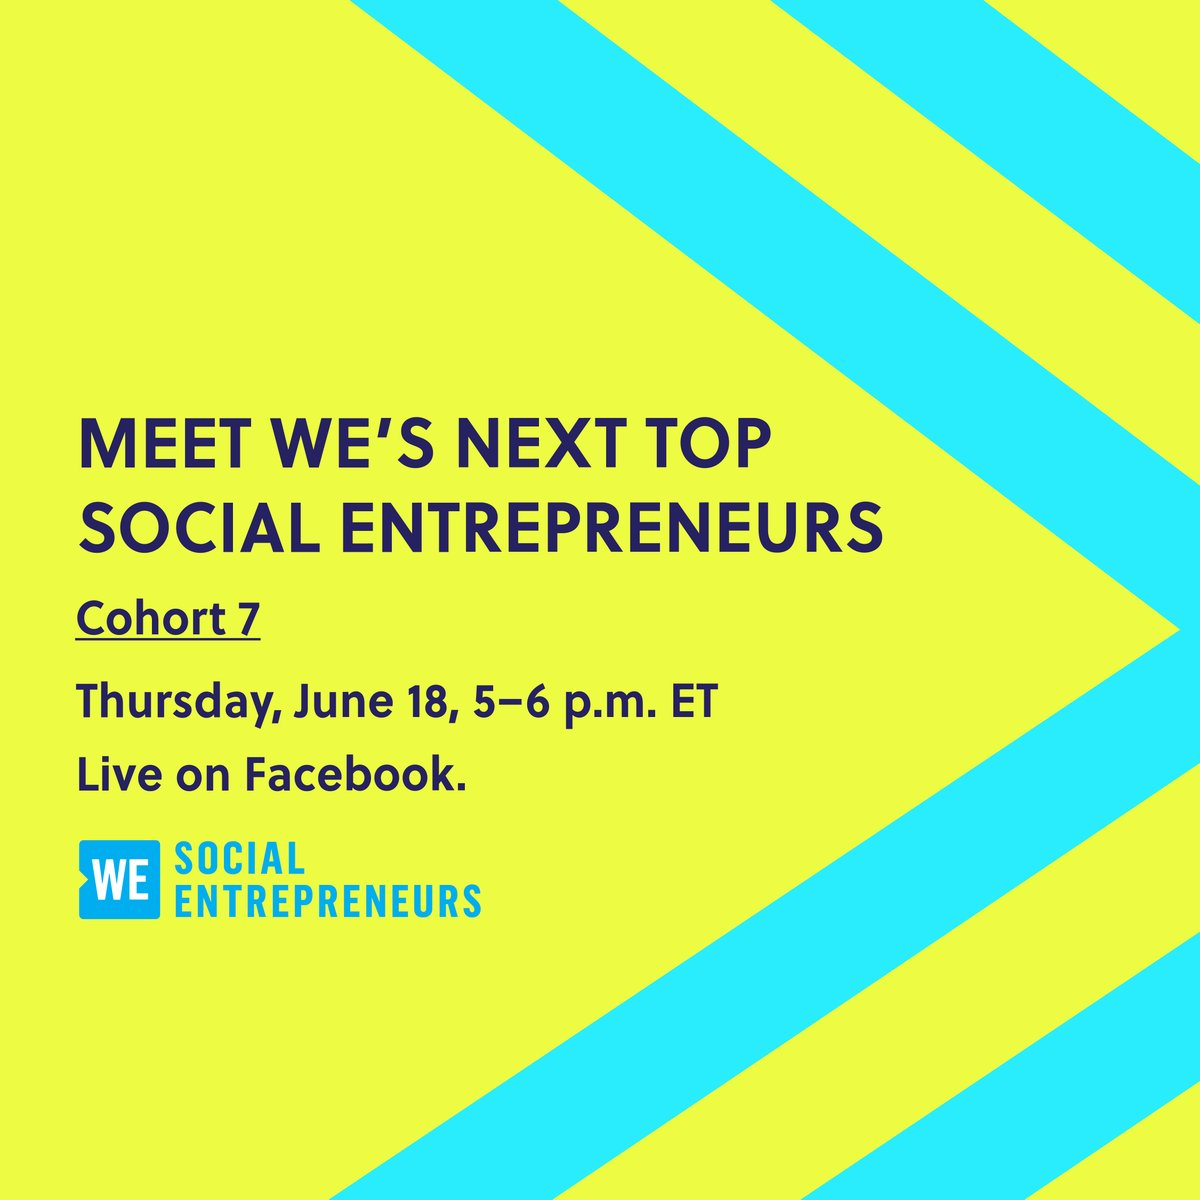 Watch as the next great social entrepreneurs present their ideas to a panel of experts!  Join us live on Facebook on Thursday, June 18 from 5-6pmET. - https://t.co/al8rvWvDIK https://t.co/qMbv773jma